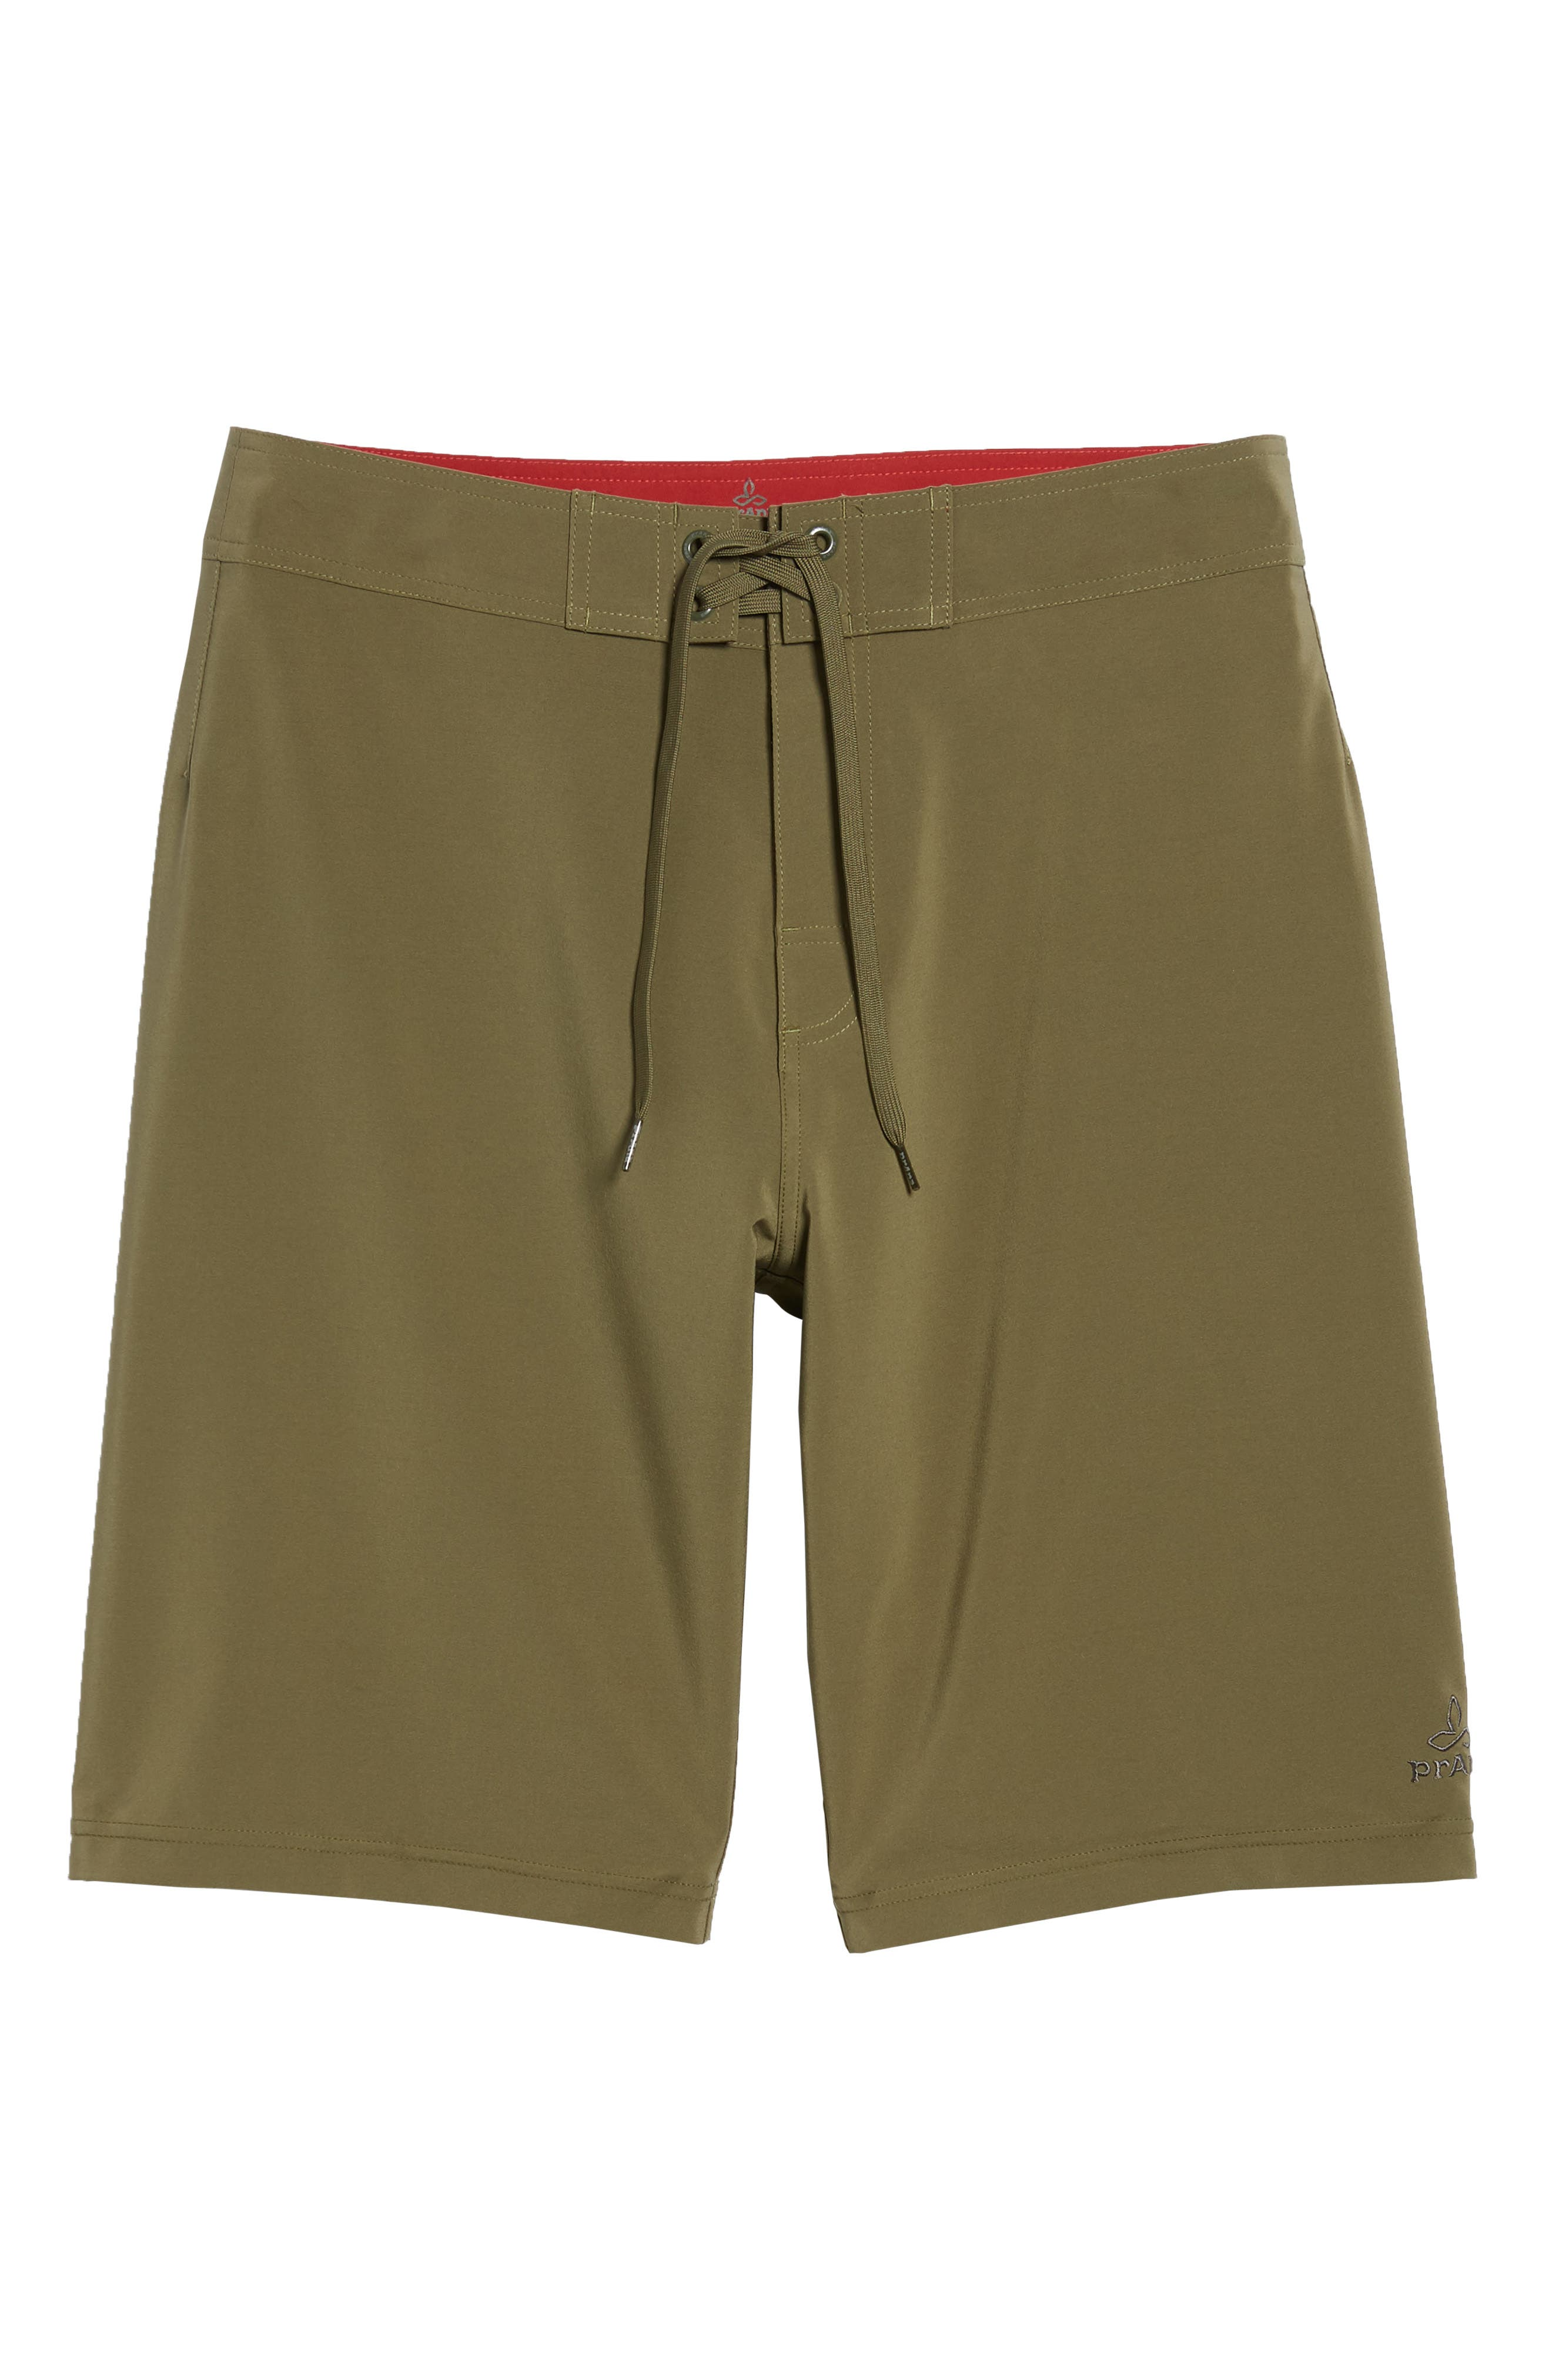 'Sediment' Stretch Board Shorts,                             Main thumbnail 1, color,                             Cargo Green